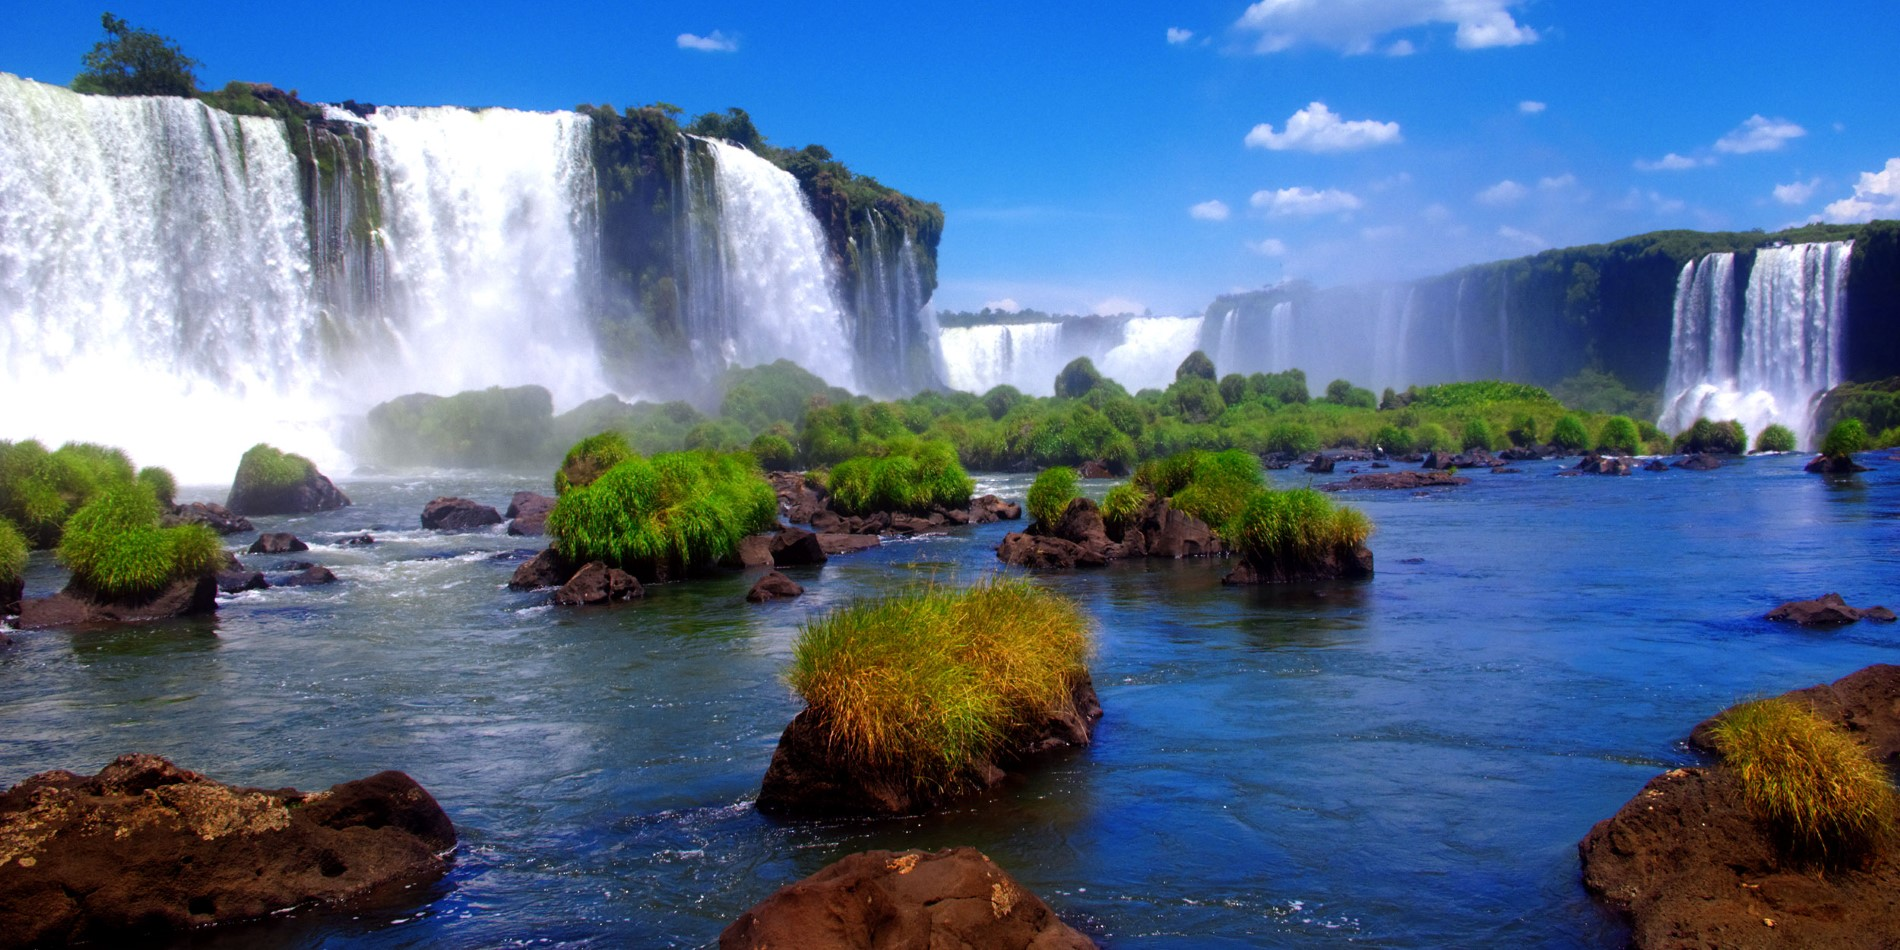 See the great Iguazu Falls on this tour